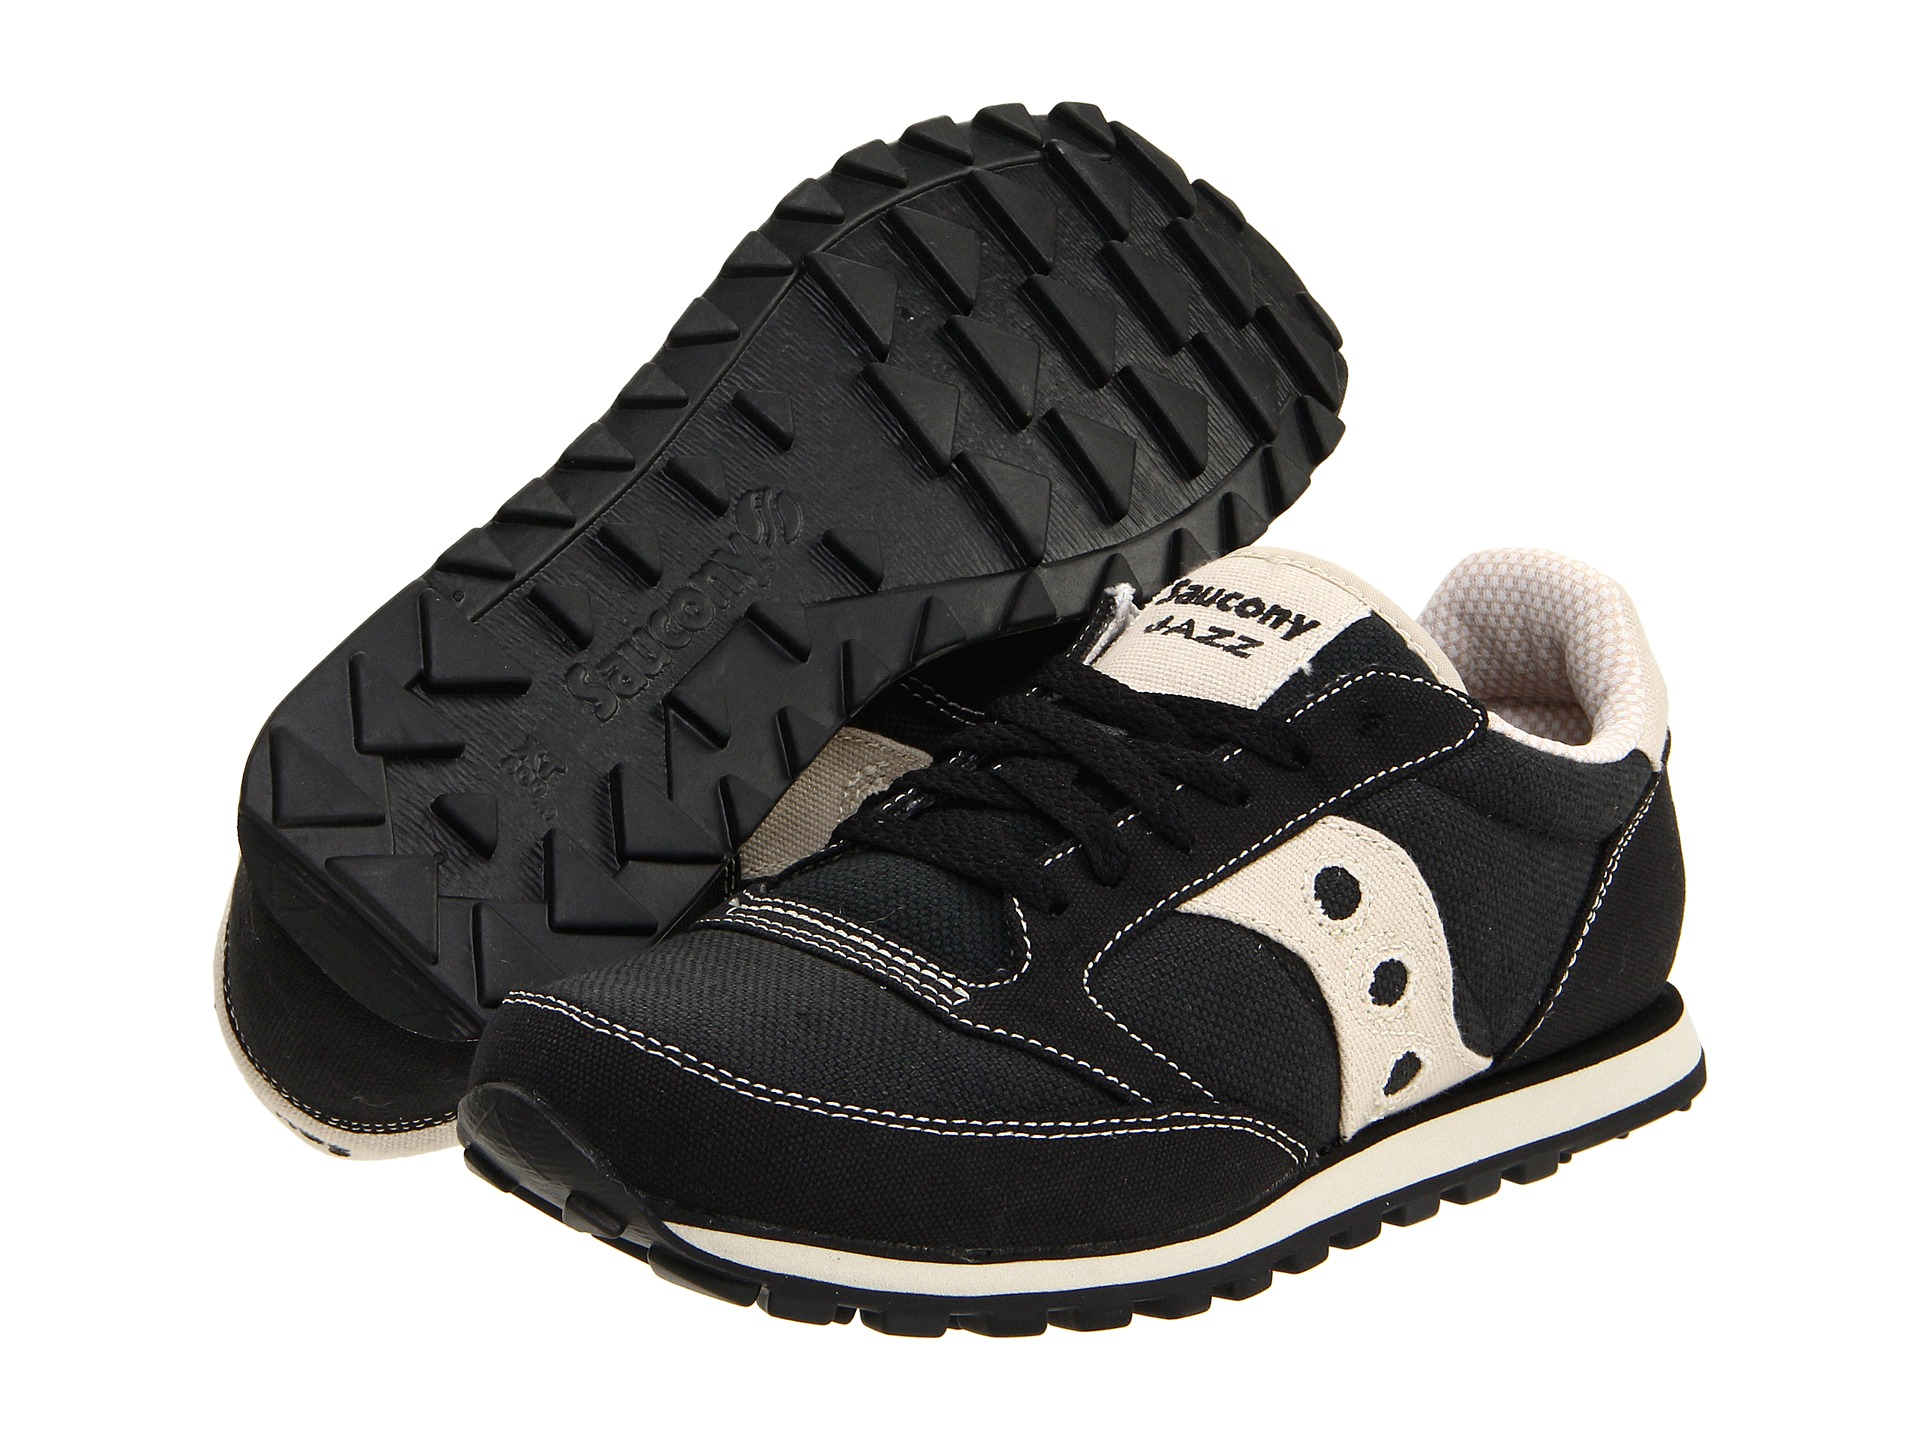 eab34170 Buy cheap saucony jazz 16 womens > Up to OFF56% Discounted